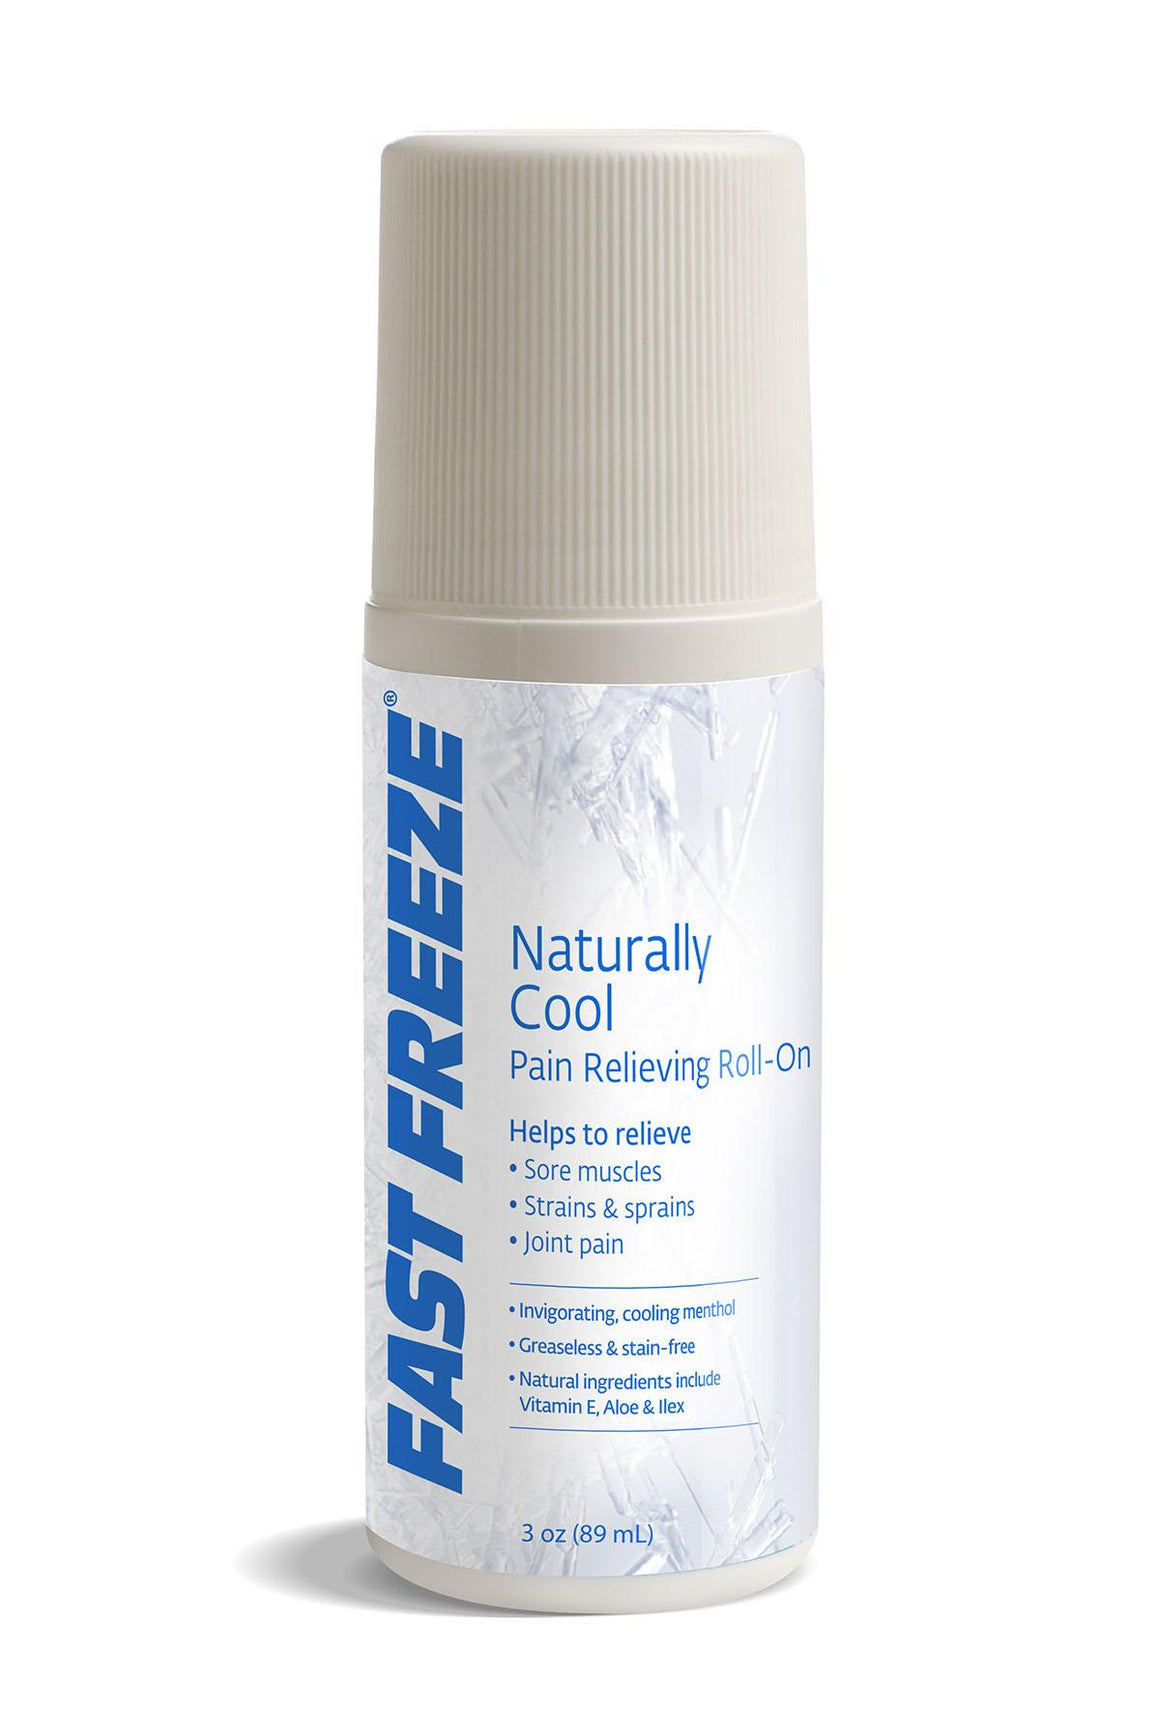 Fast Freeze Cold Therapy Pain Relief Gel,3.000 OZ, Each